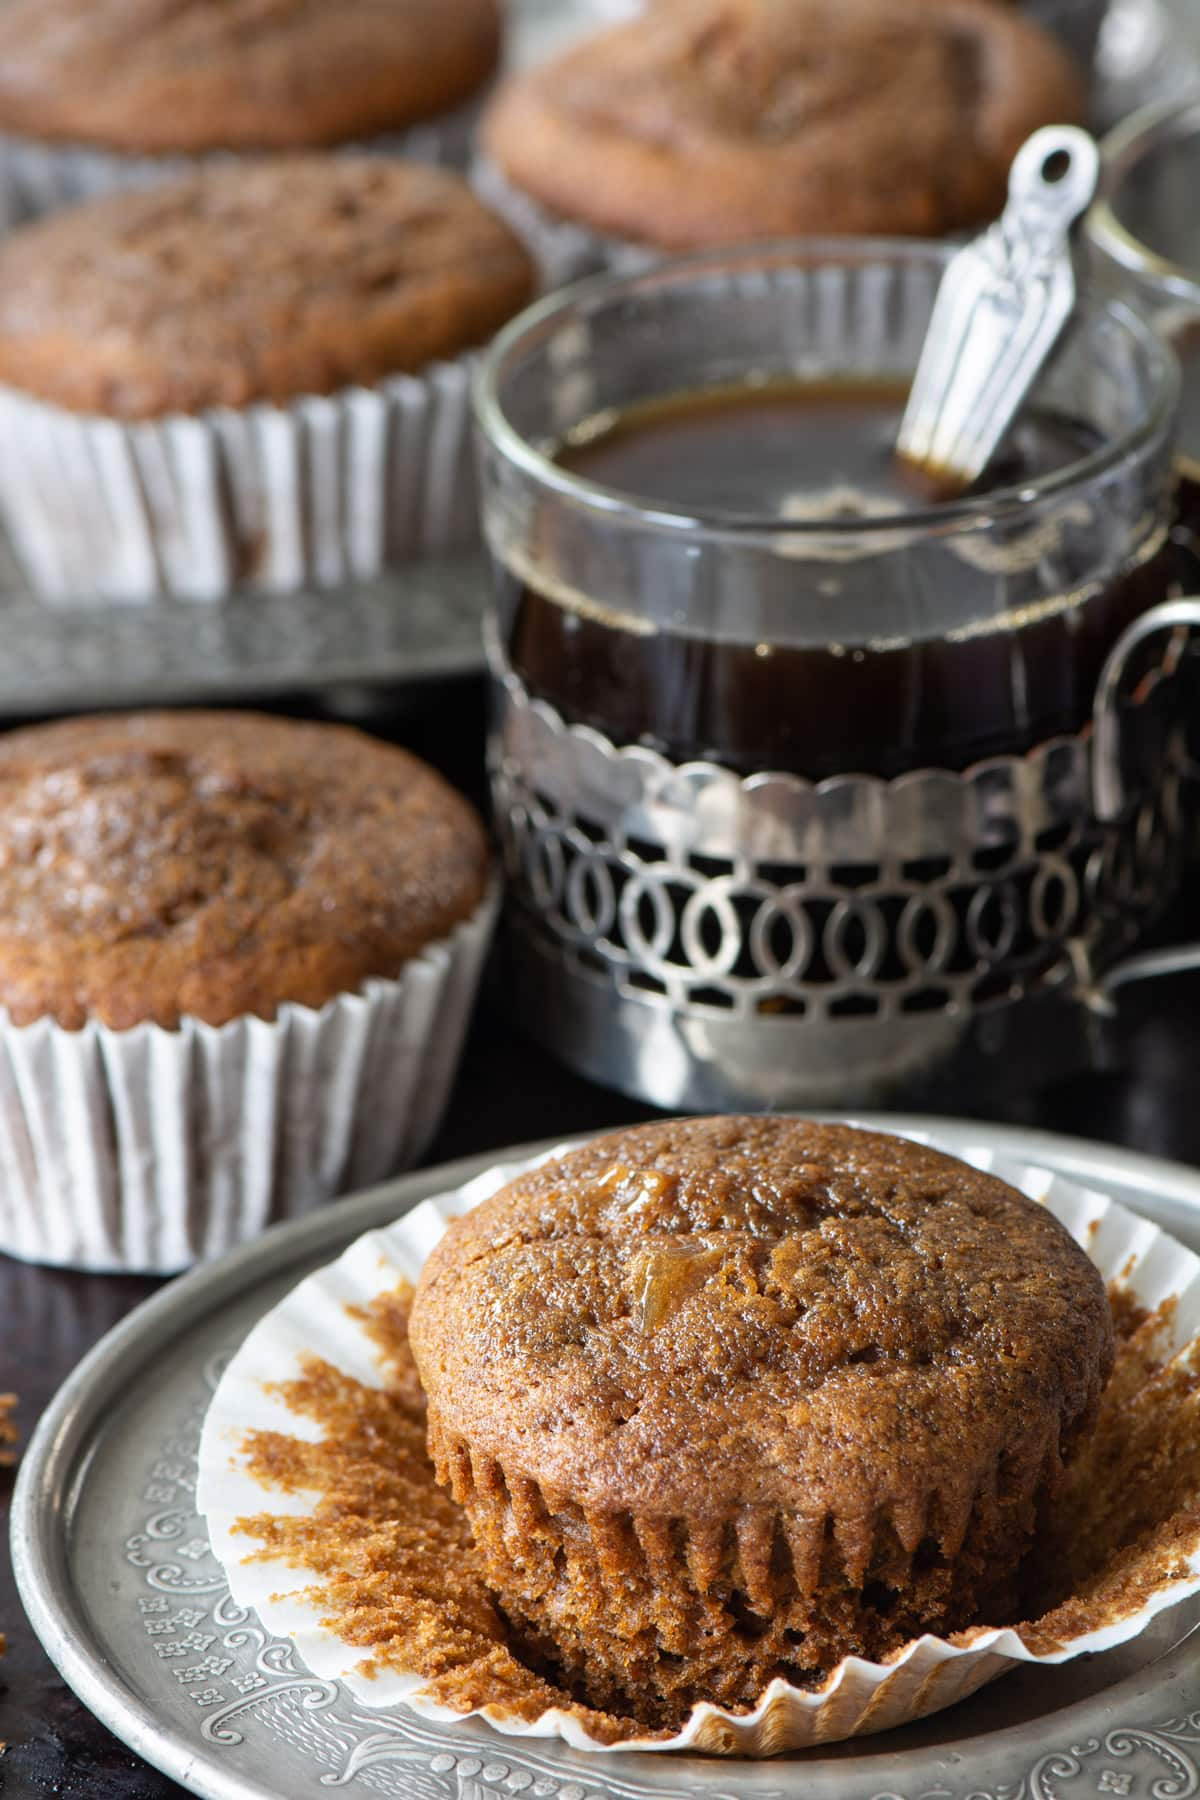 These delicious sticky gingerbread cupcakes are made with ground ginger, chopped stem ginger and brushed with ginger syrup so they're packed full of flavour and perfectly moist. The ideal treat for any gingerbread lovers.